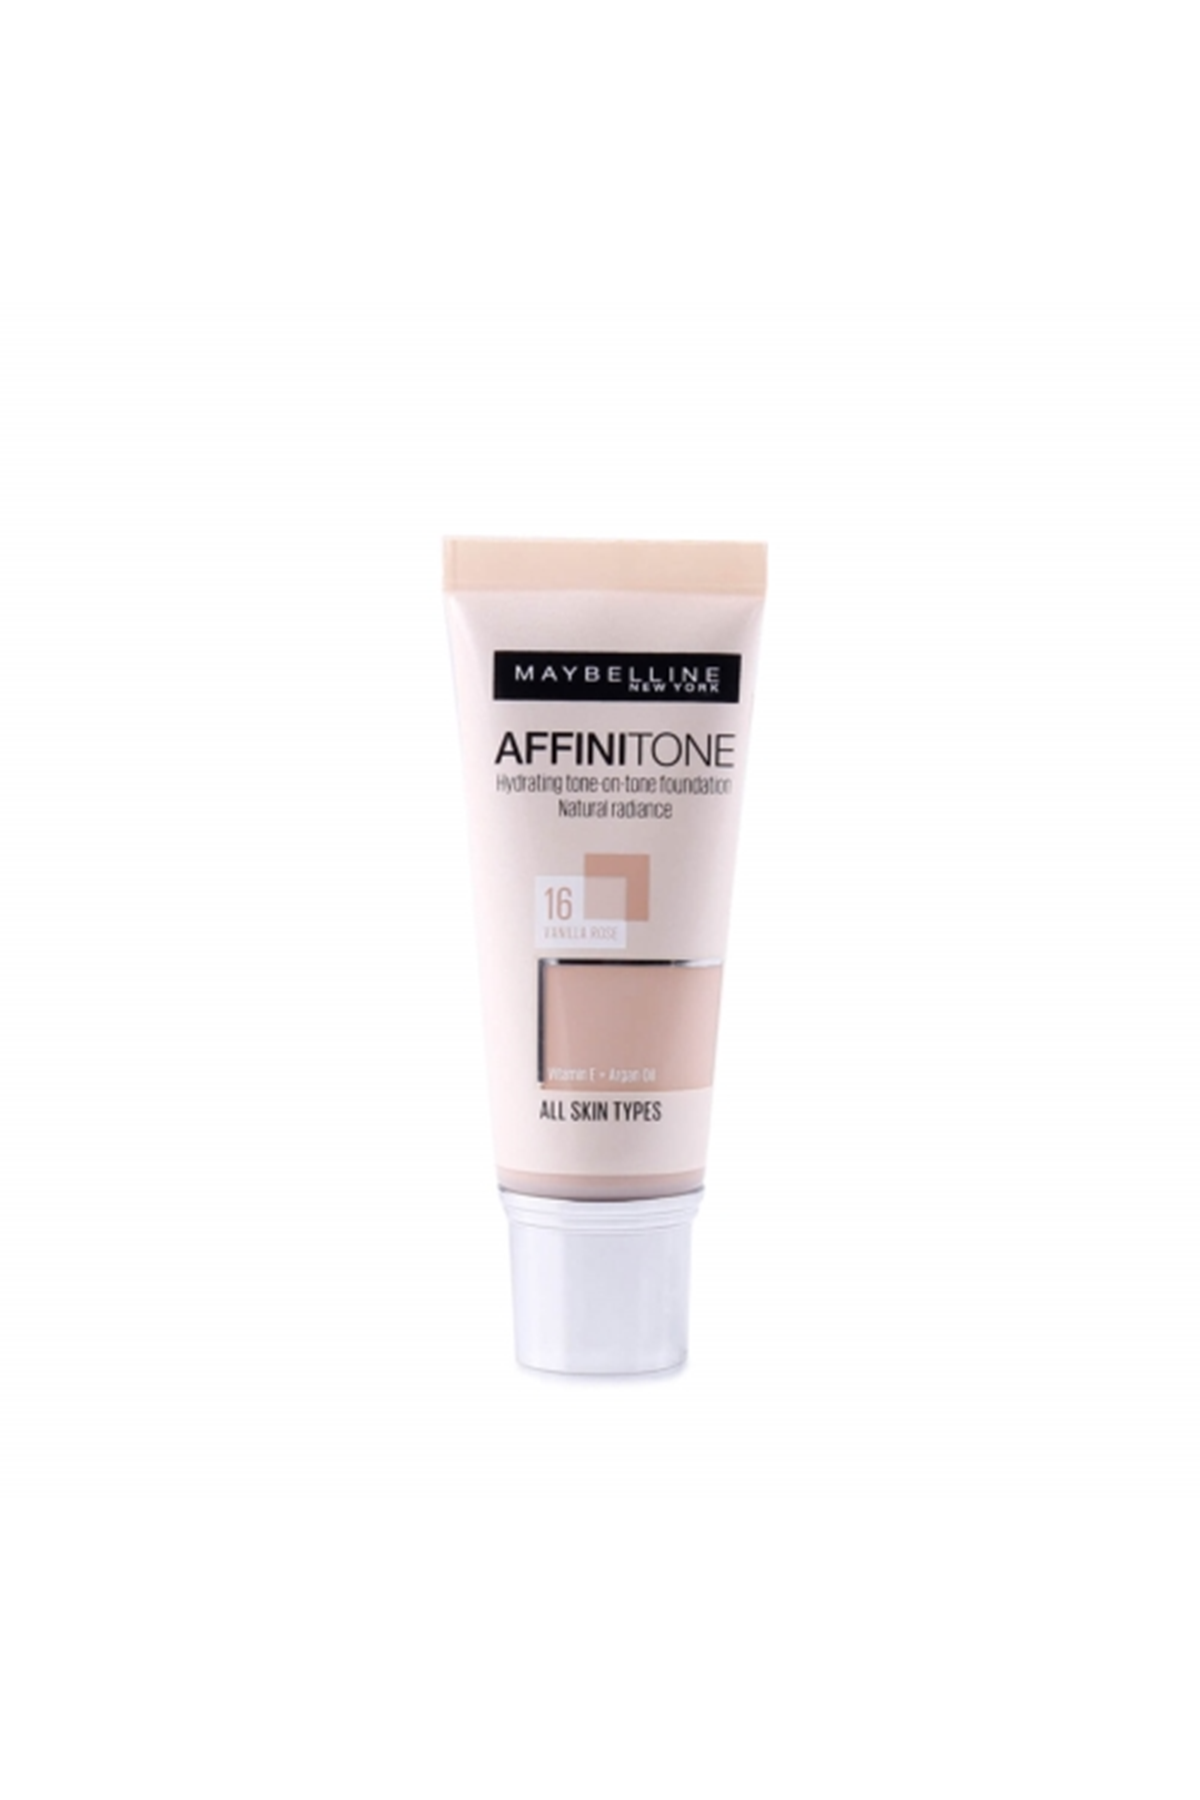 Maybelline New York Affinitone Kapatıcı ve Nemlendirici Fondöten Vanilla Rose 30 ml No: 16